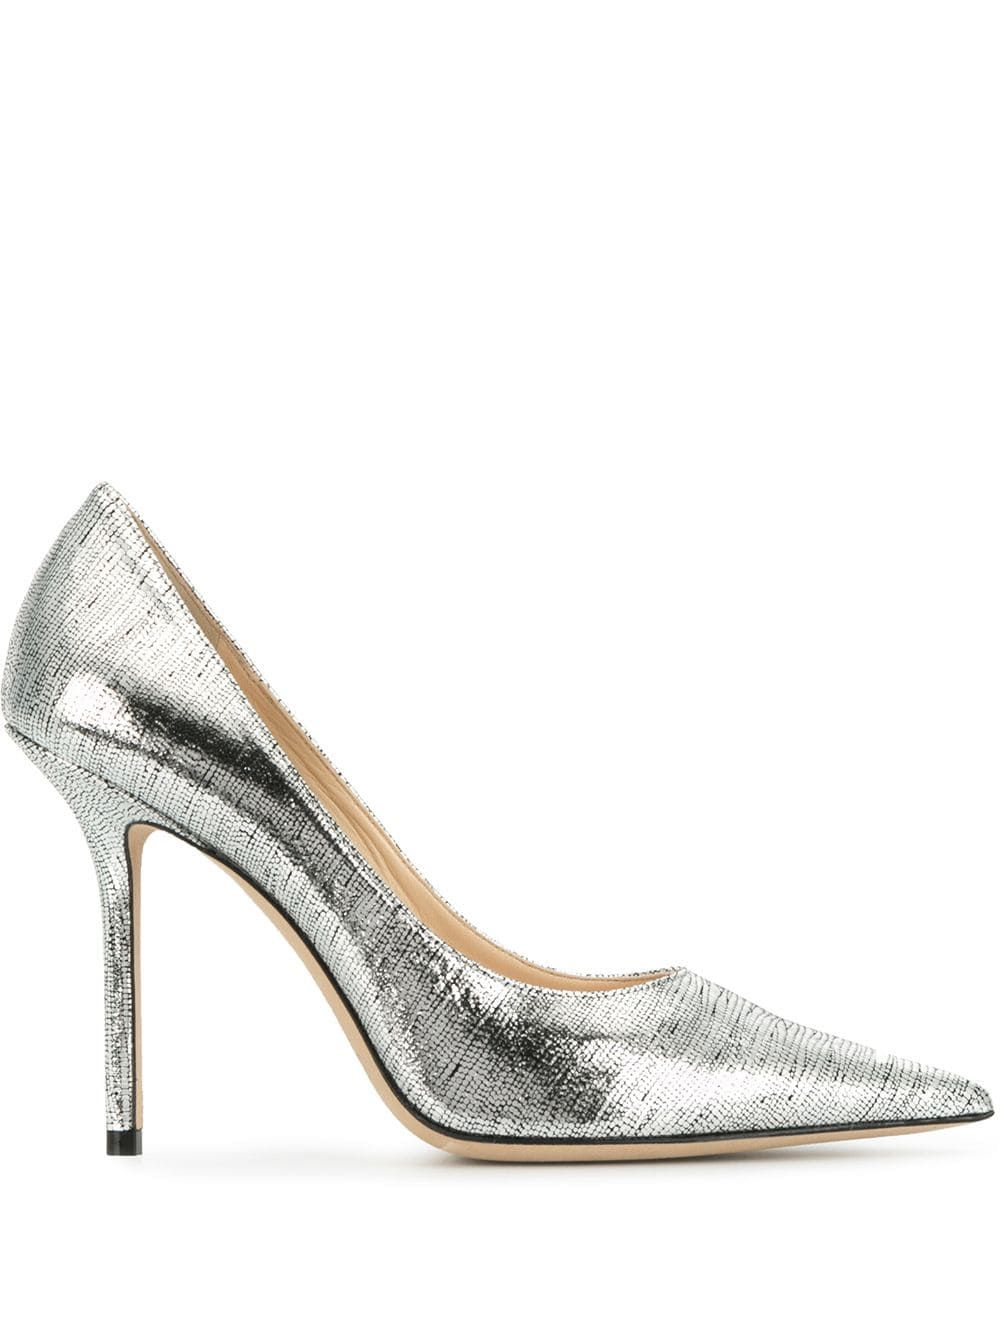 Choo Love Jimmy Pumps 100 2019Products In Silver NvO0wm8n